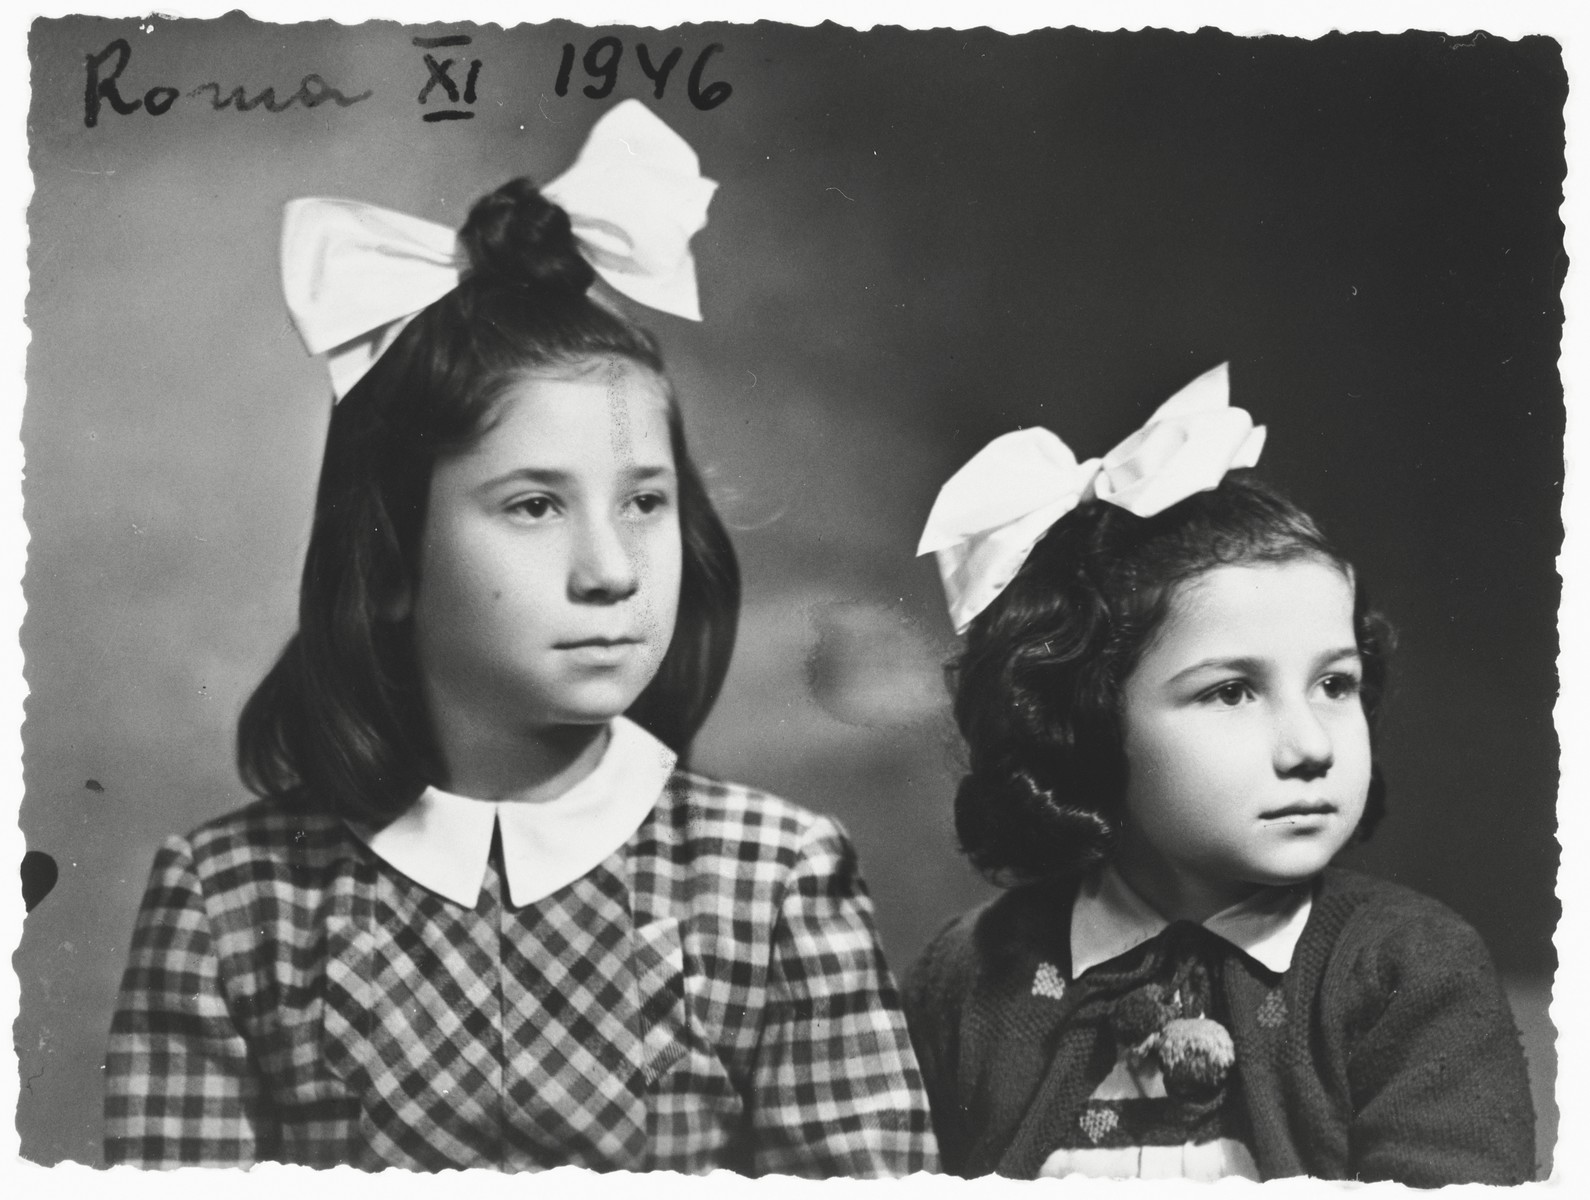 Studio portrait of Marylka Majranc and Rivka Horowitz taken in Rome after the war.